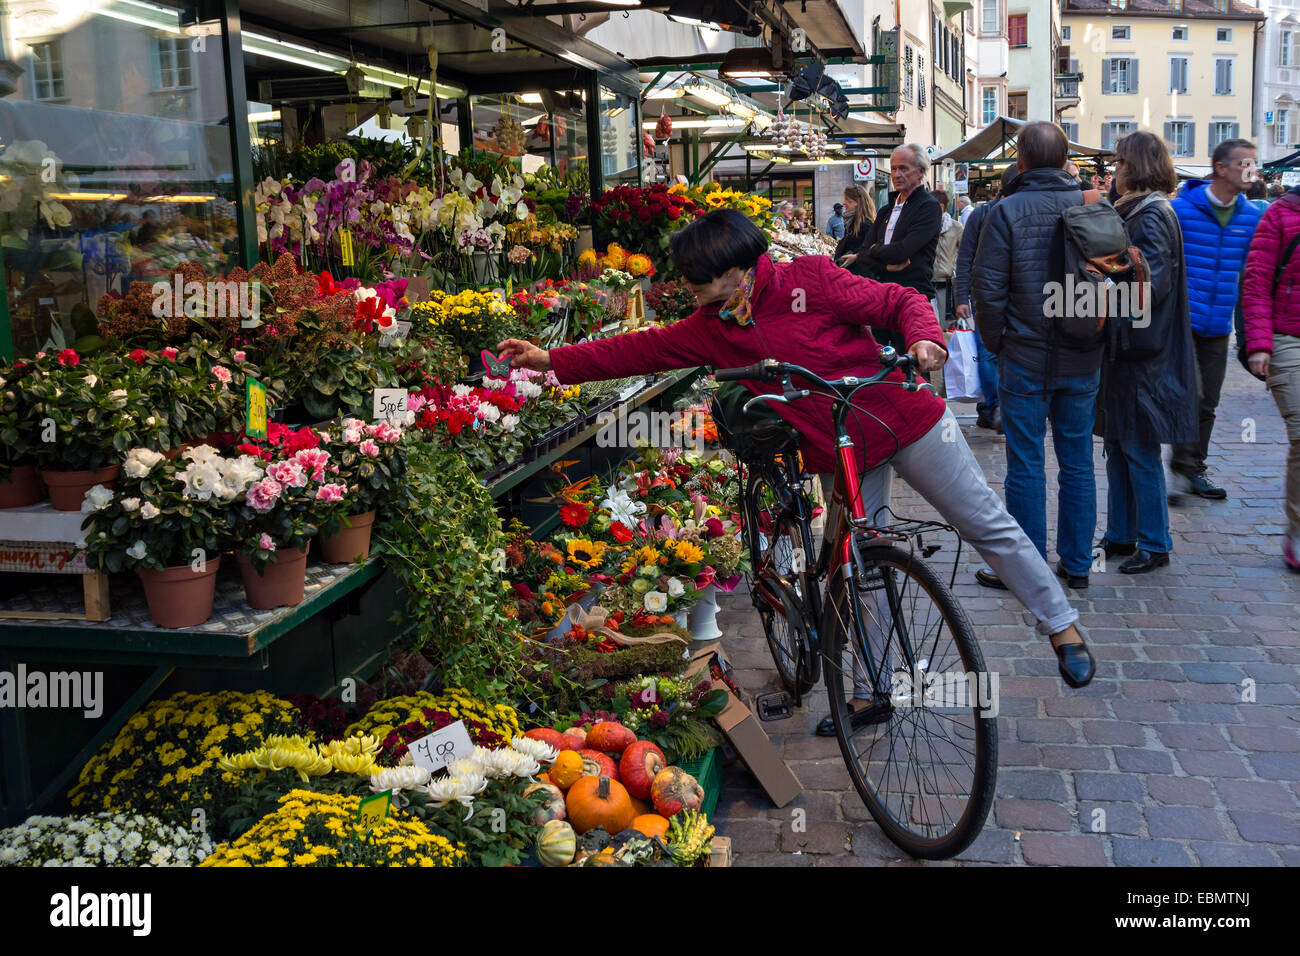 Woman with bicycle at street market flower stand (shop), Bozen,  Bolzano, South Tyrol, Italy, Europe - Stock Image